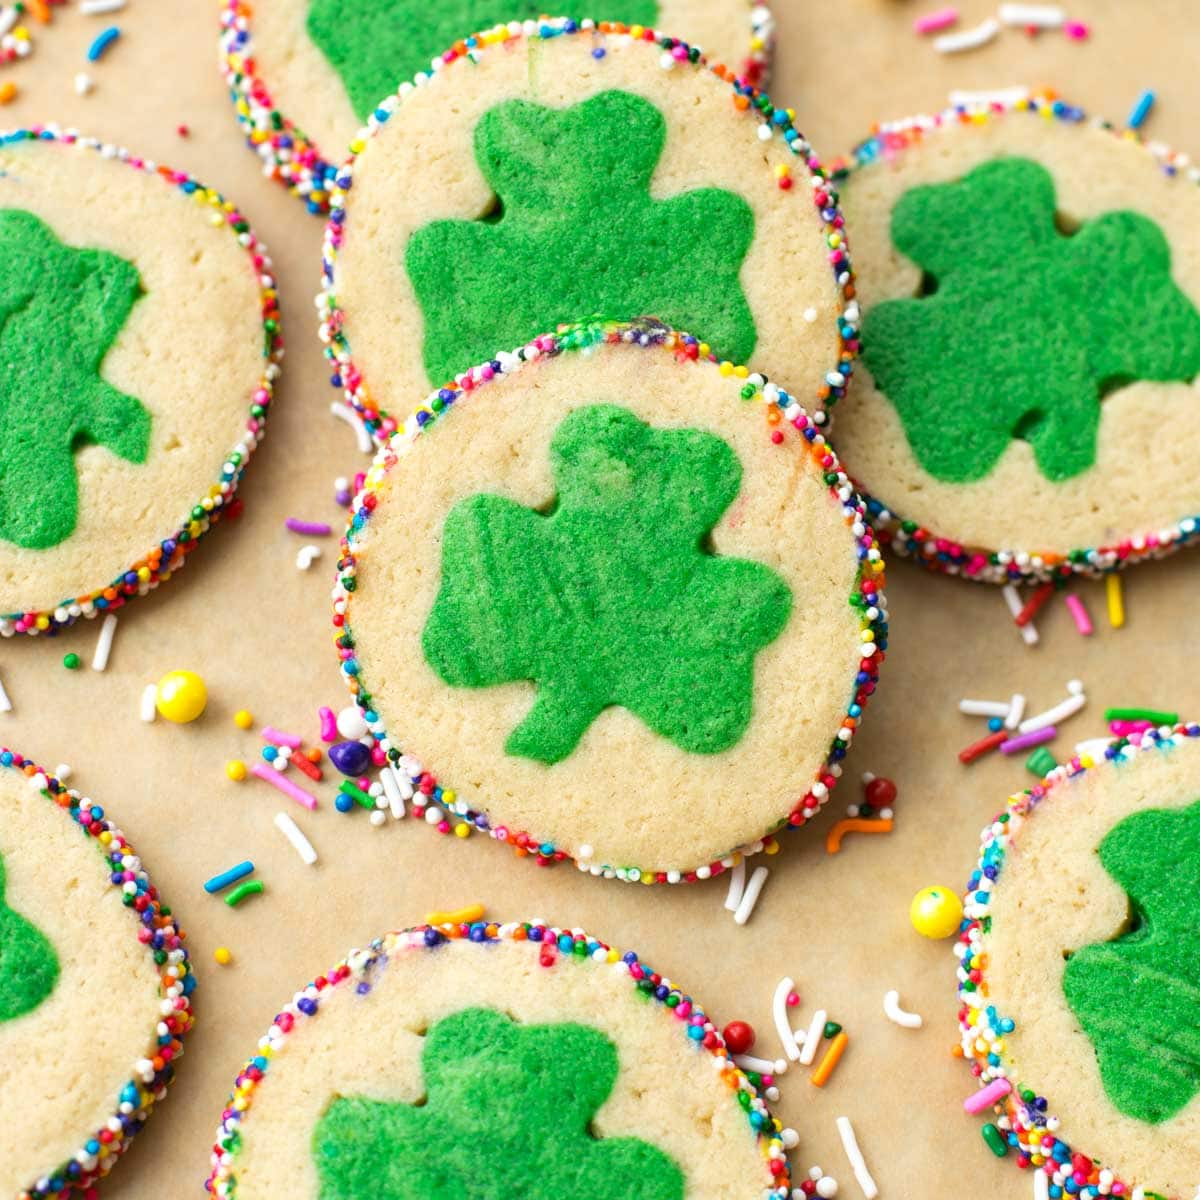 St. Patrick's Day Cookies with a clover in the middle and sprinkles on the edges